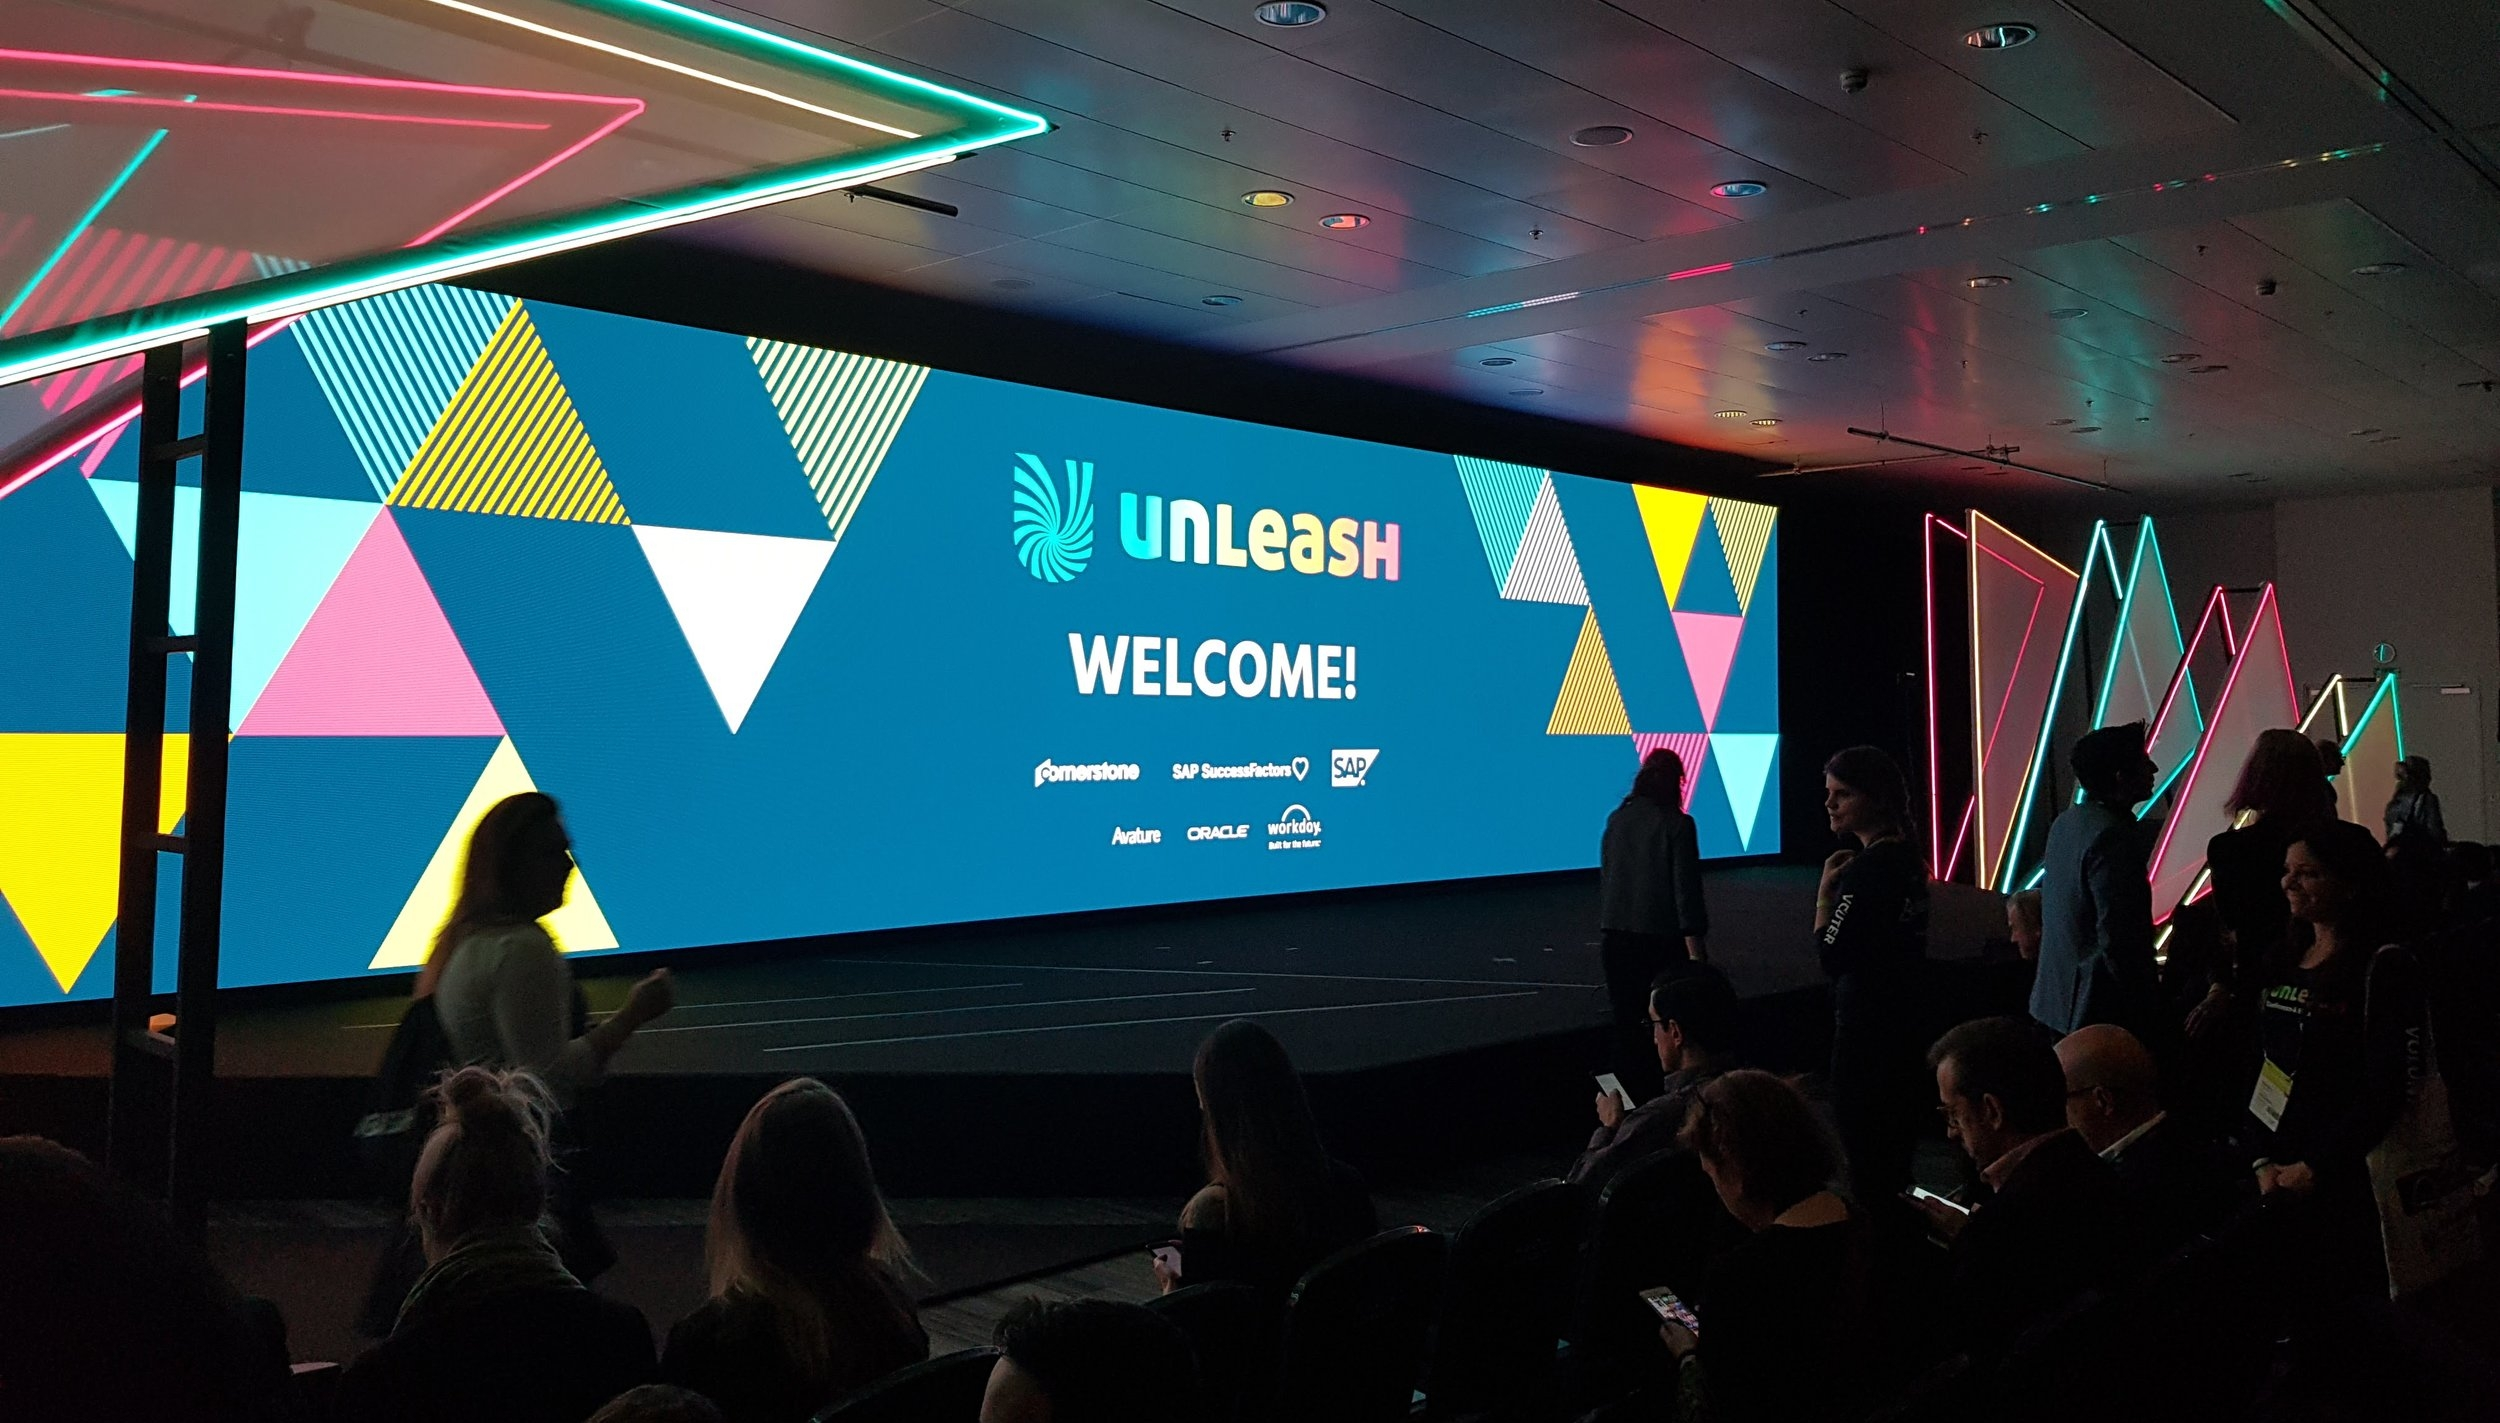 """Unleash 2018 says """"Welcome"""" for the first time!"""